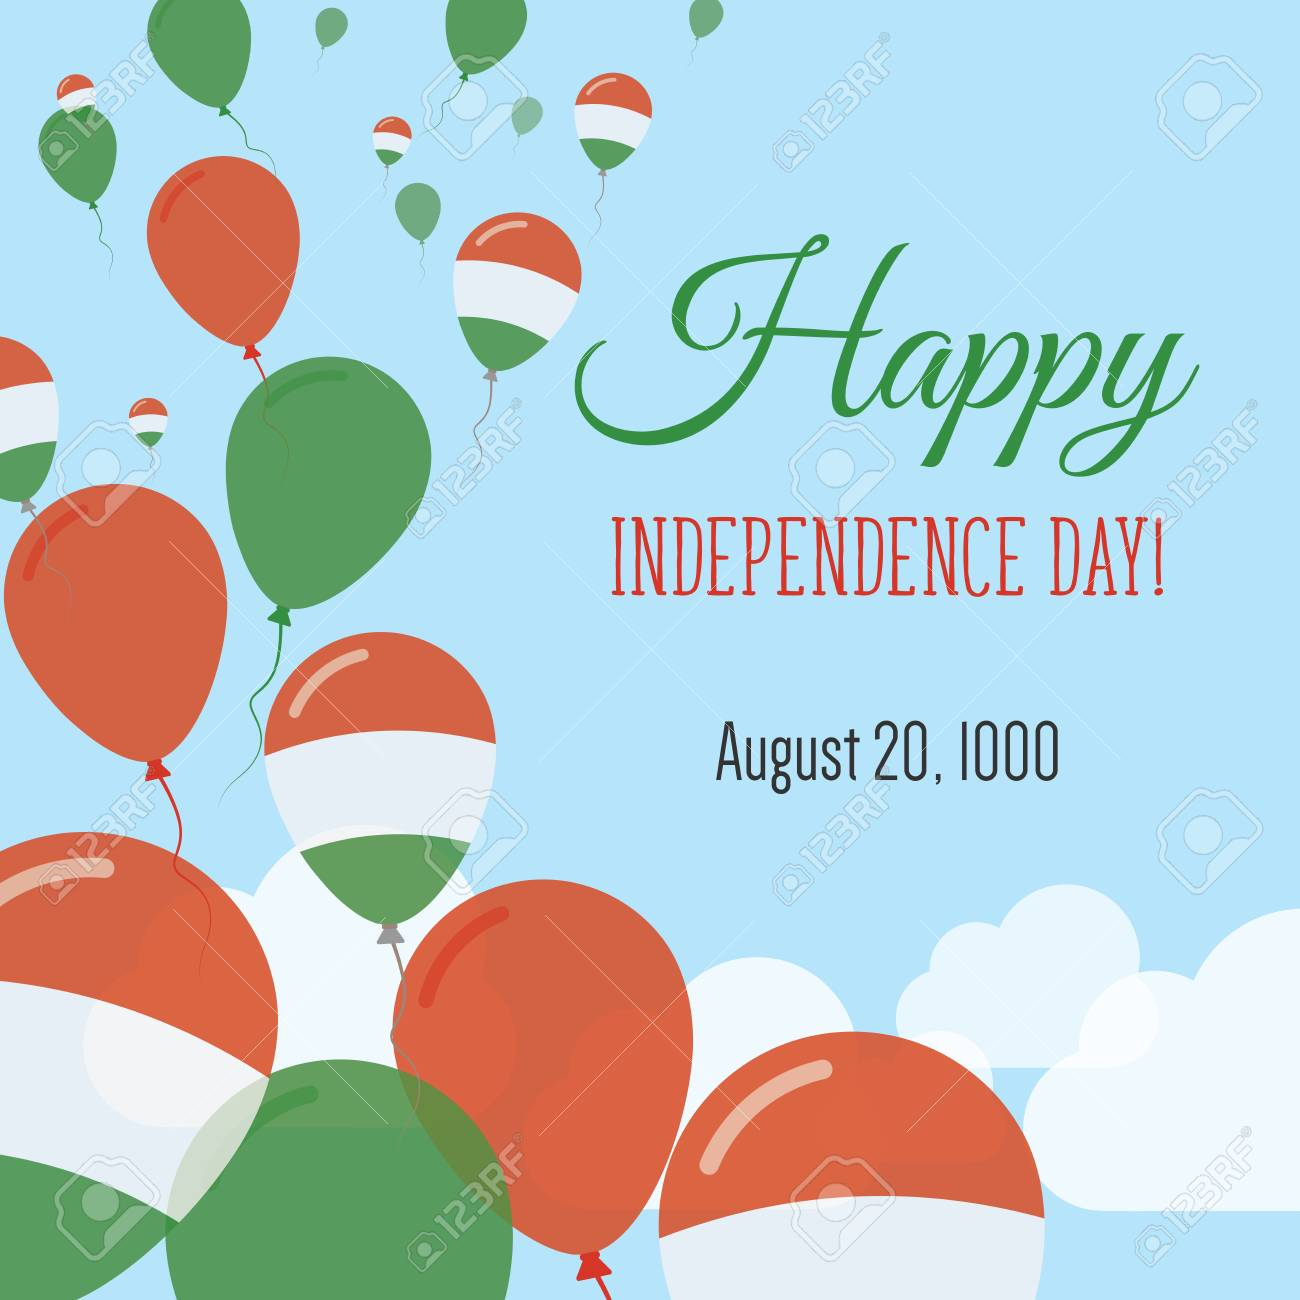 Independence day flat greeting card hungary independence day independence day flat greeting card hungary independence day hungarian flag balloons patriotic poster m4hsunfo